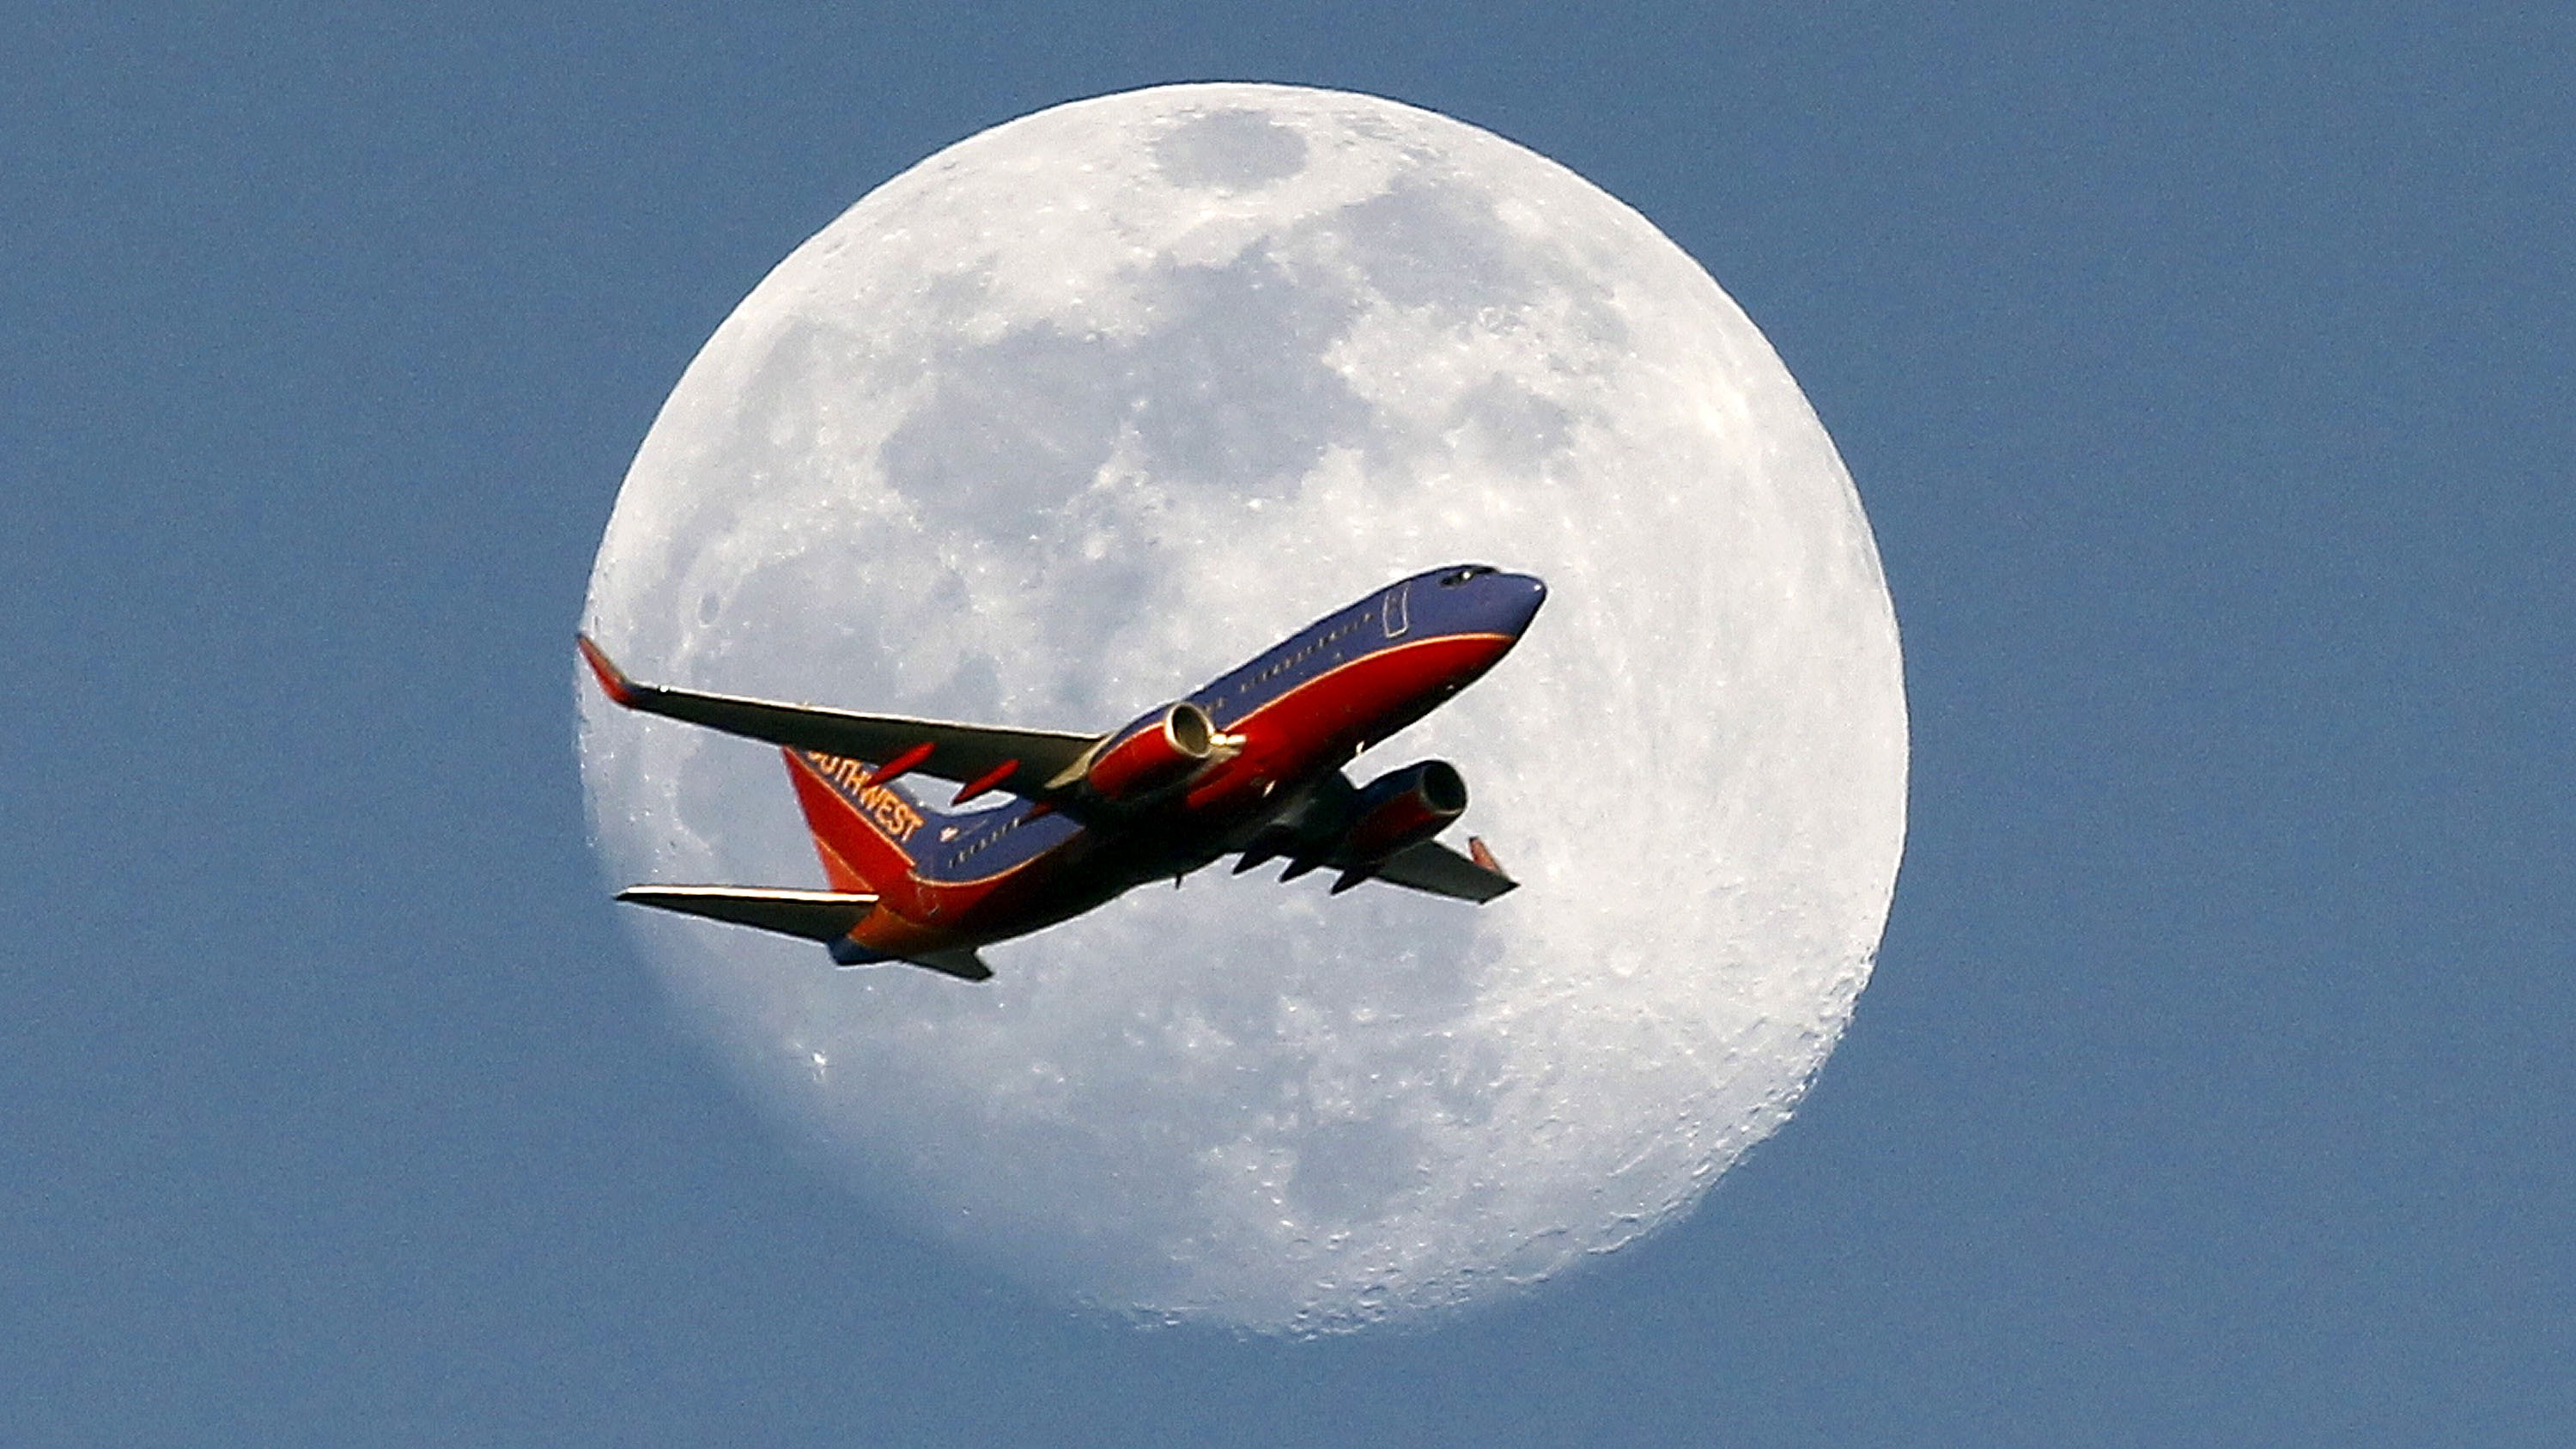 A Southwest Airlines passenger plane crosses the waxing gibbous moon in Whittier, Saturday, May 30, 2015.